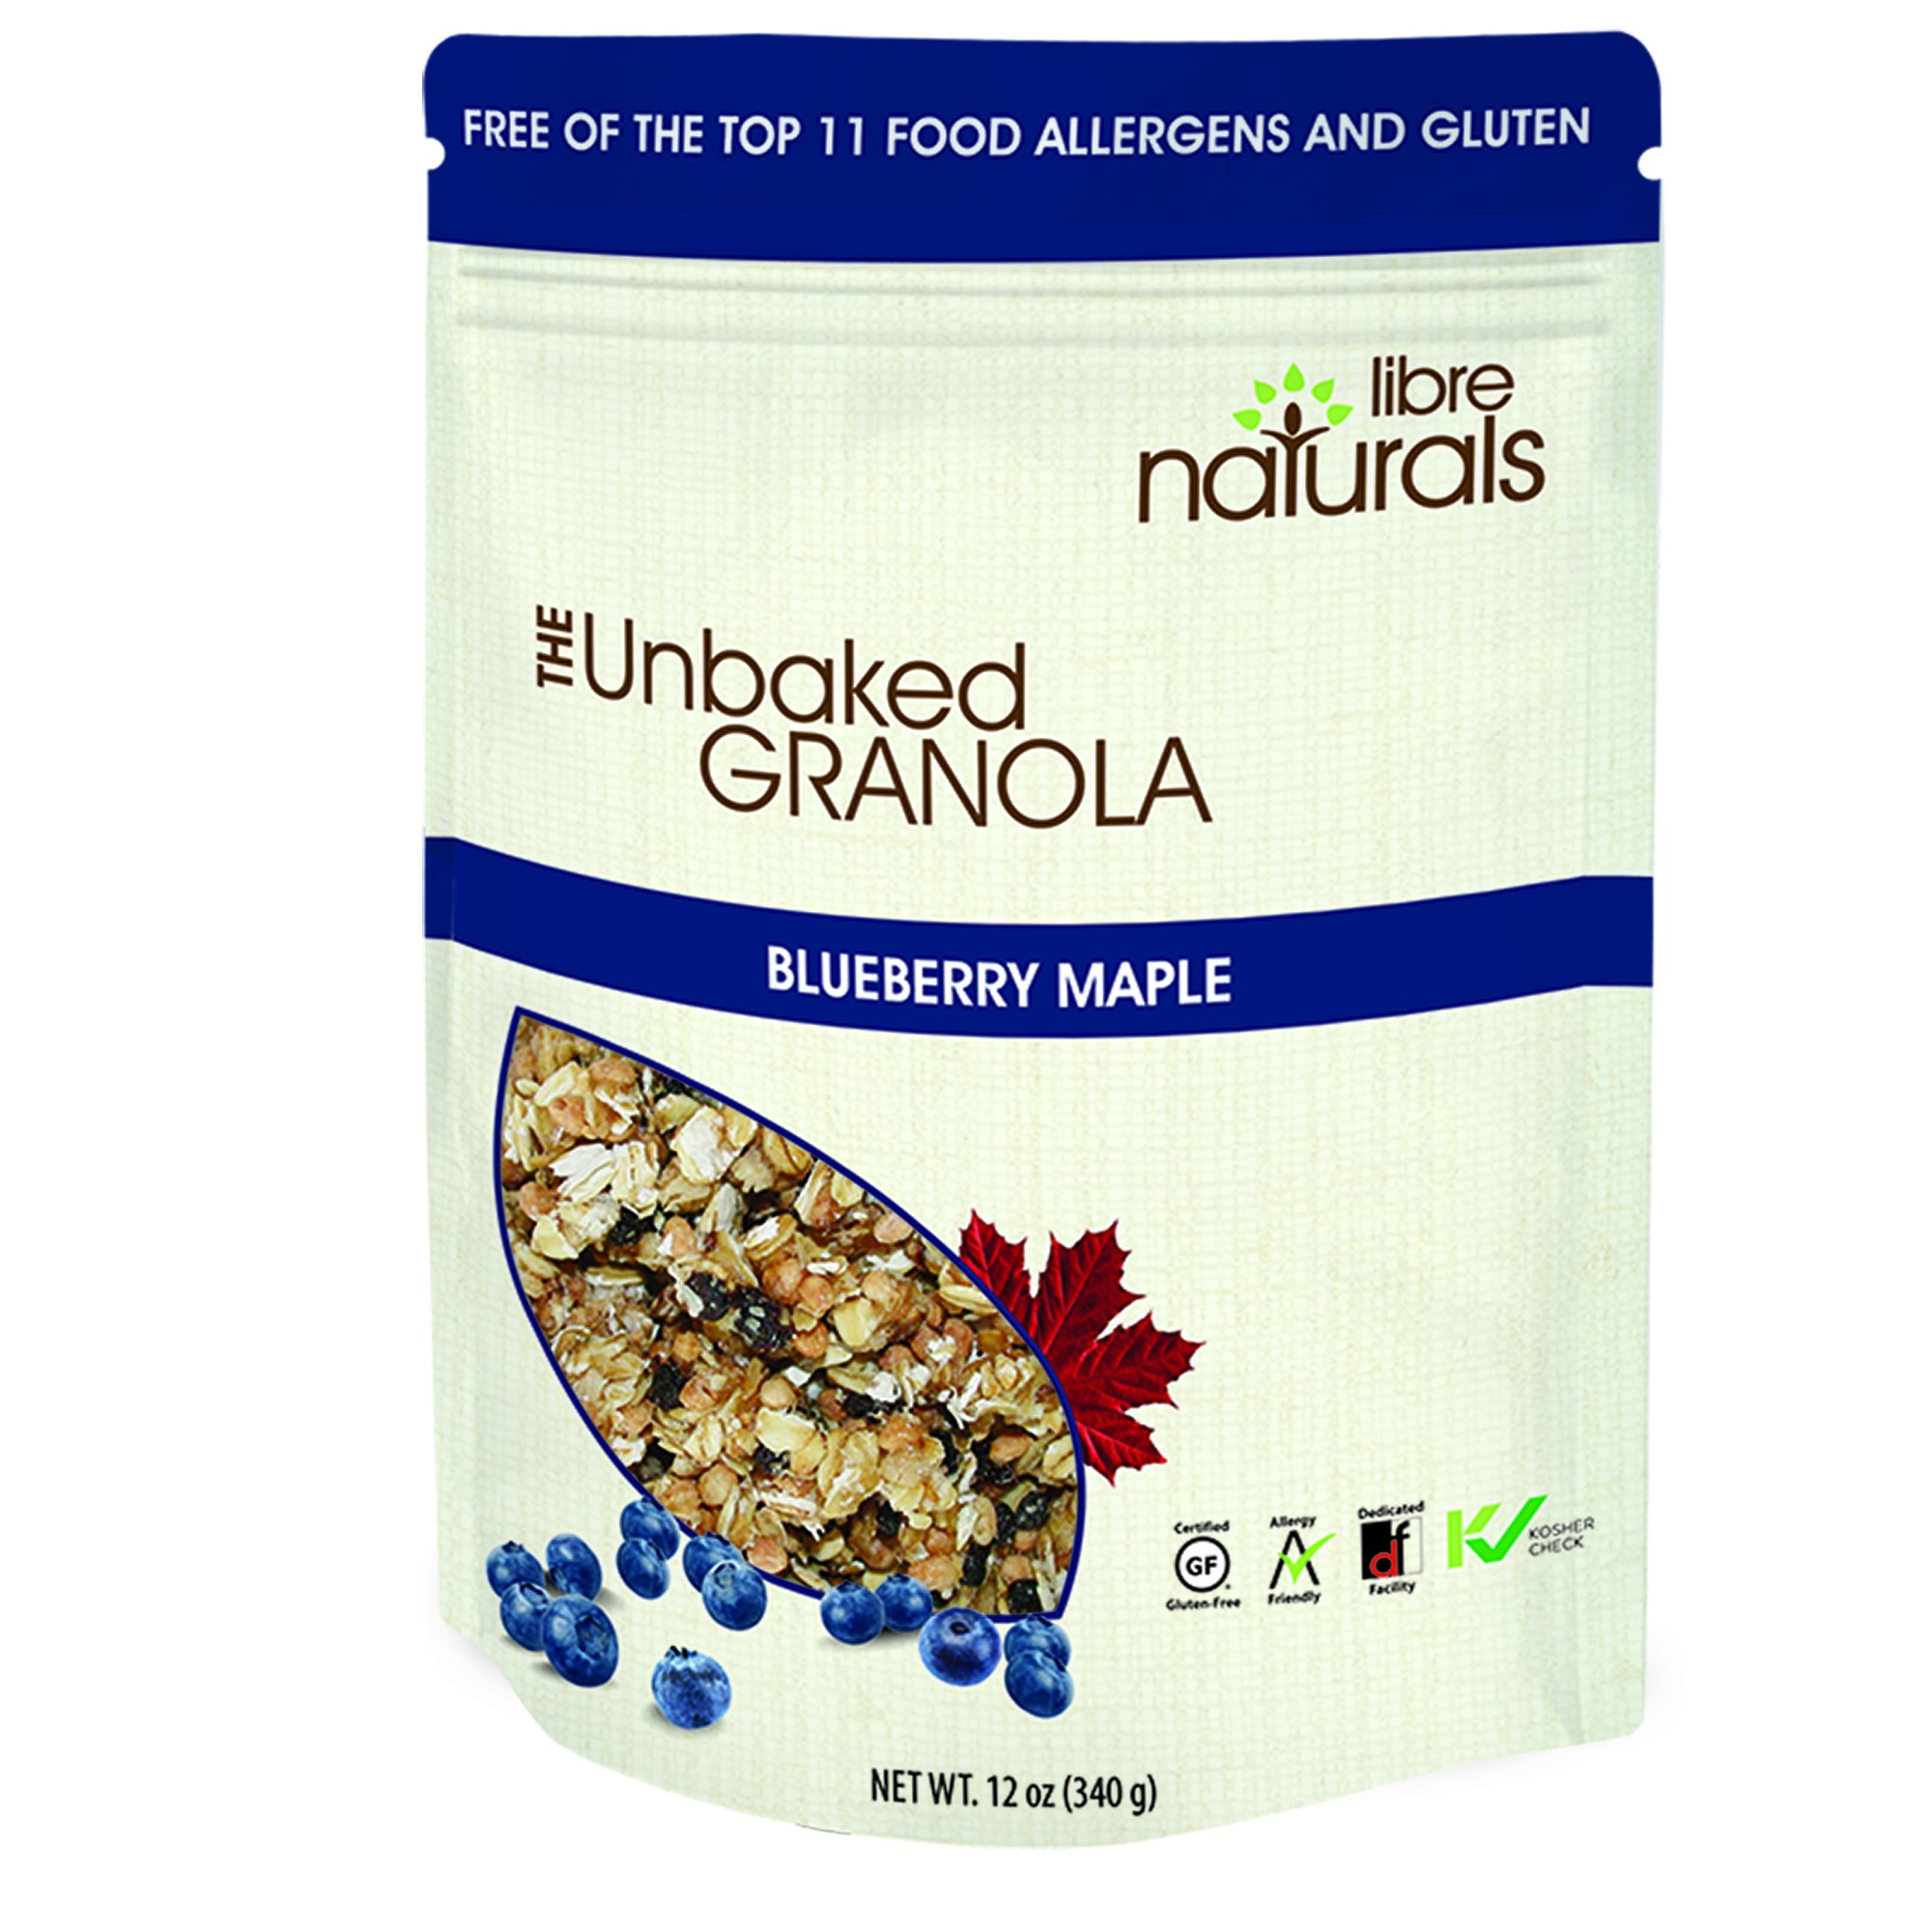 Allergy Friendly, Gluten Free >> Blueberry Maple Granola - Libre Naturals, 340 gram pouch x 6 pack